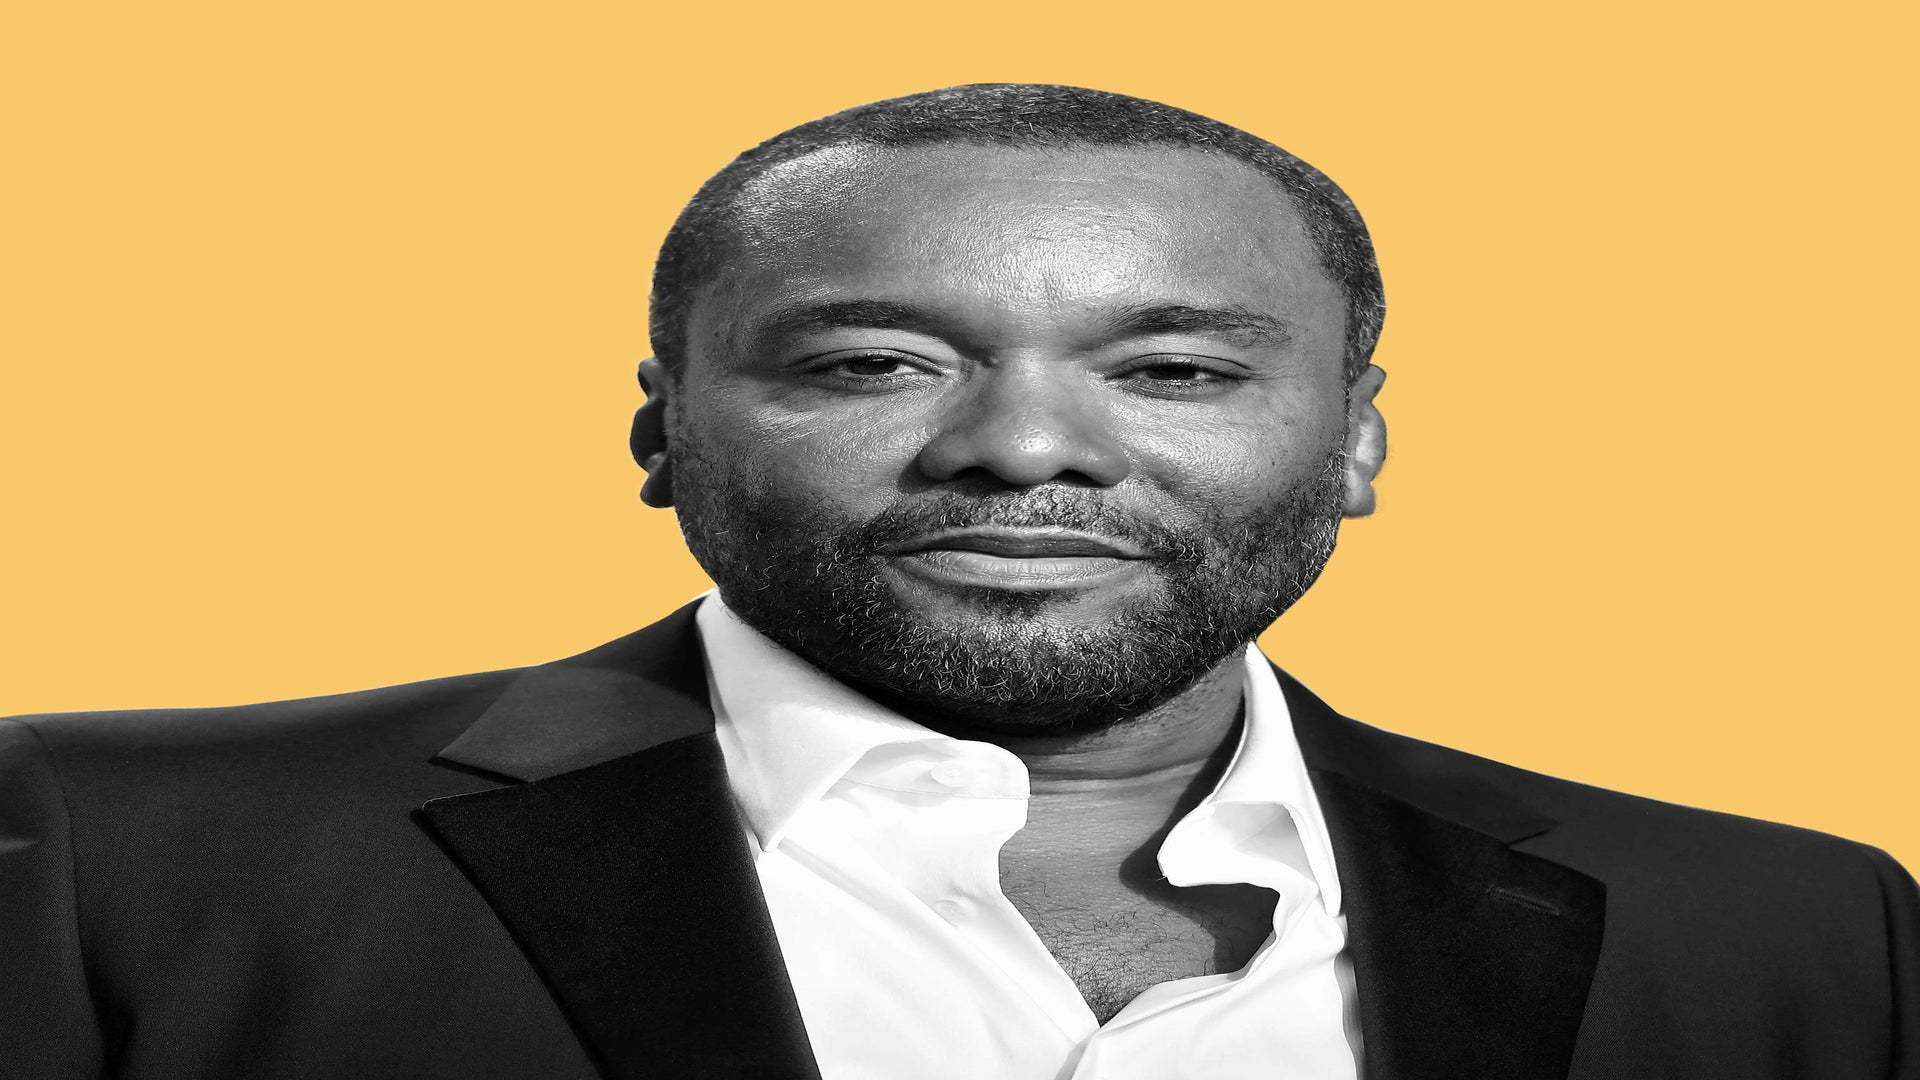 Oh No! The Battle Between Lee Daniels and Mo'Nique Continues